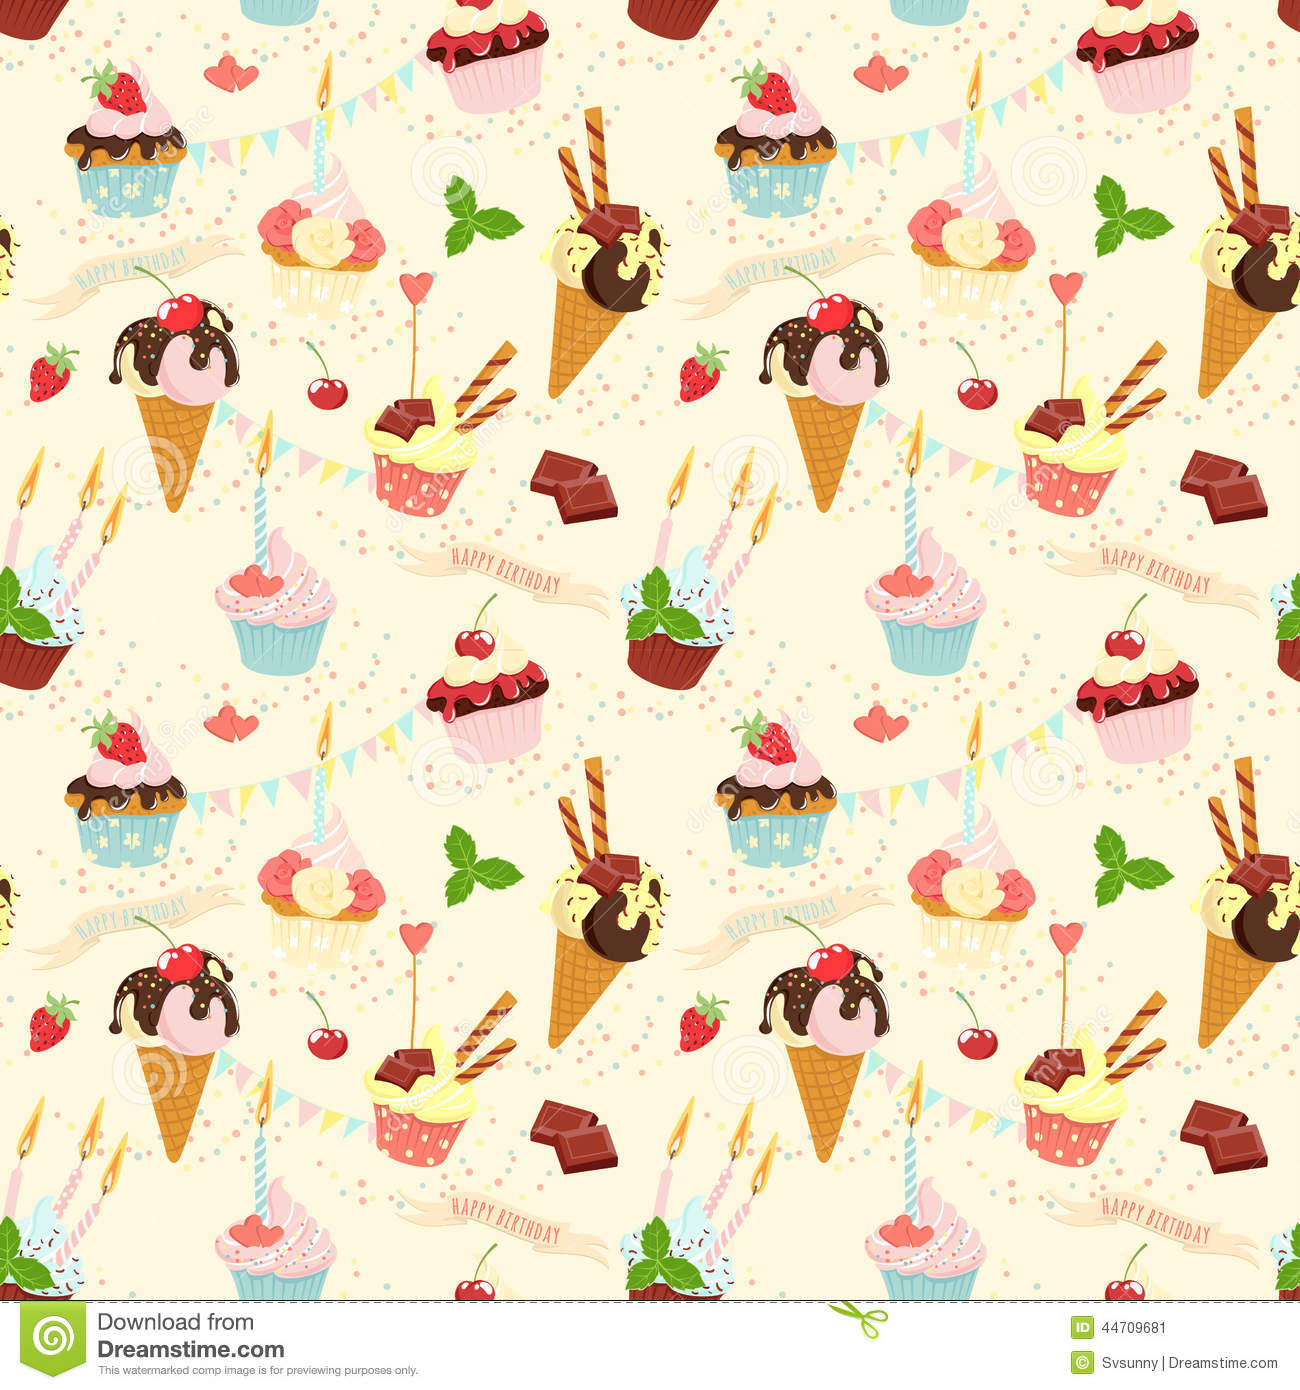 Sweet Ice Cream Flat Colorful Seamless Pattern Vector: Seamless Festive Birthday Cakes And Ice-cream Pattern